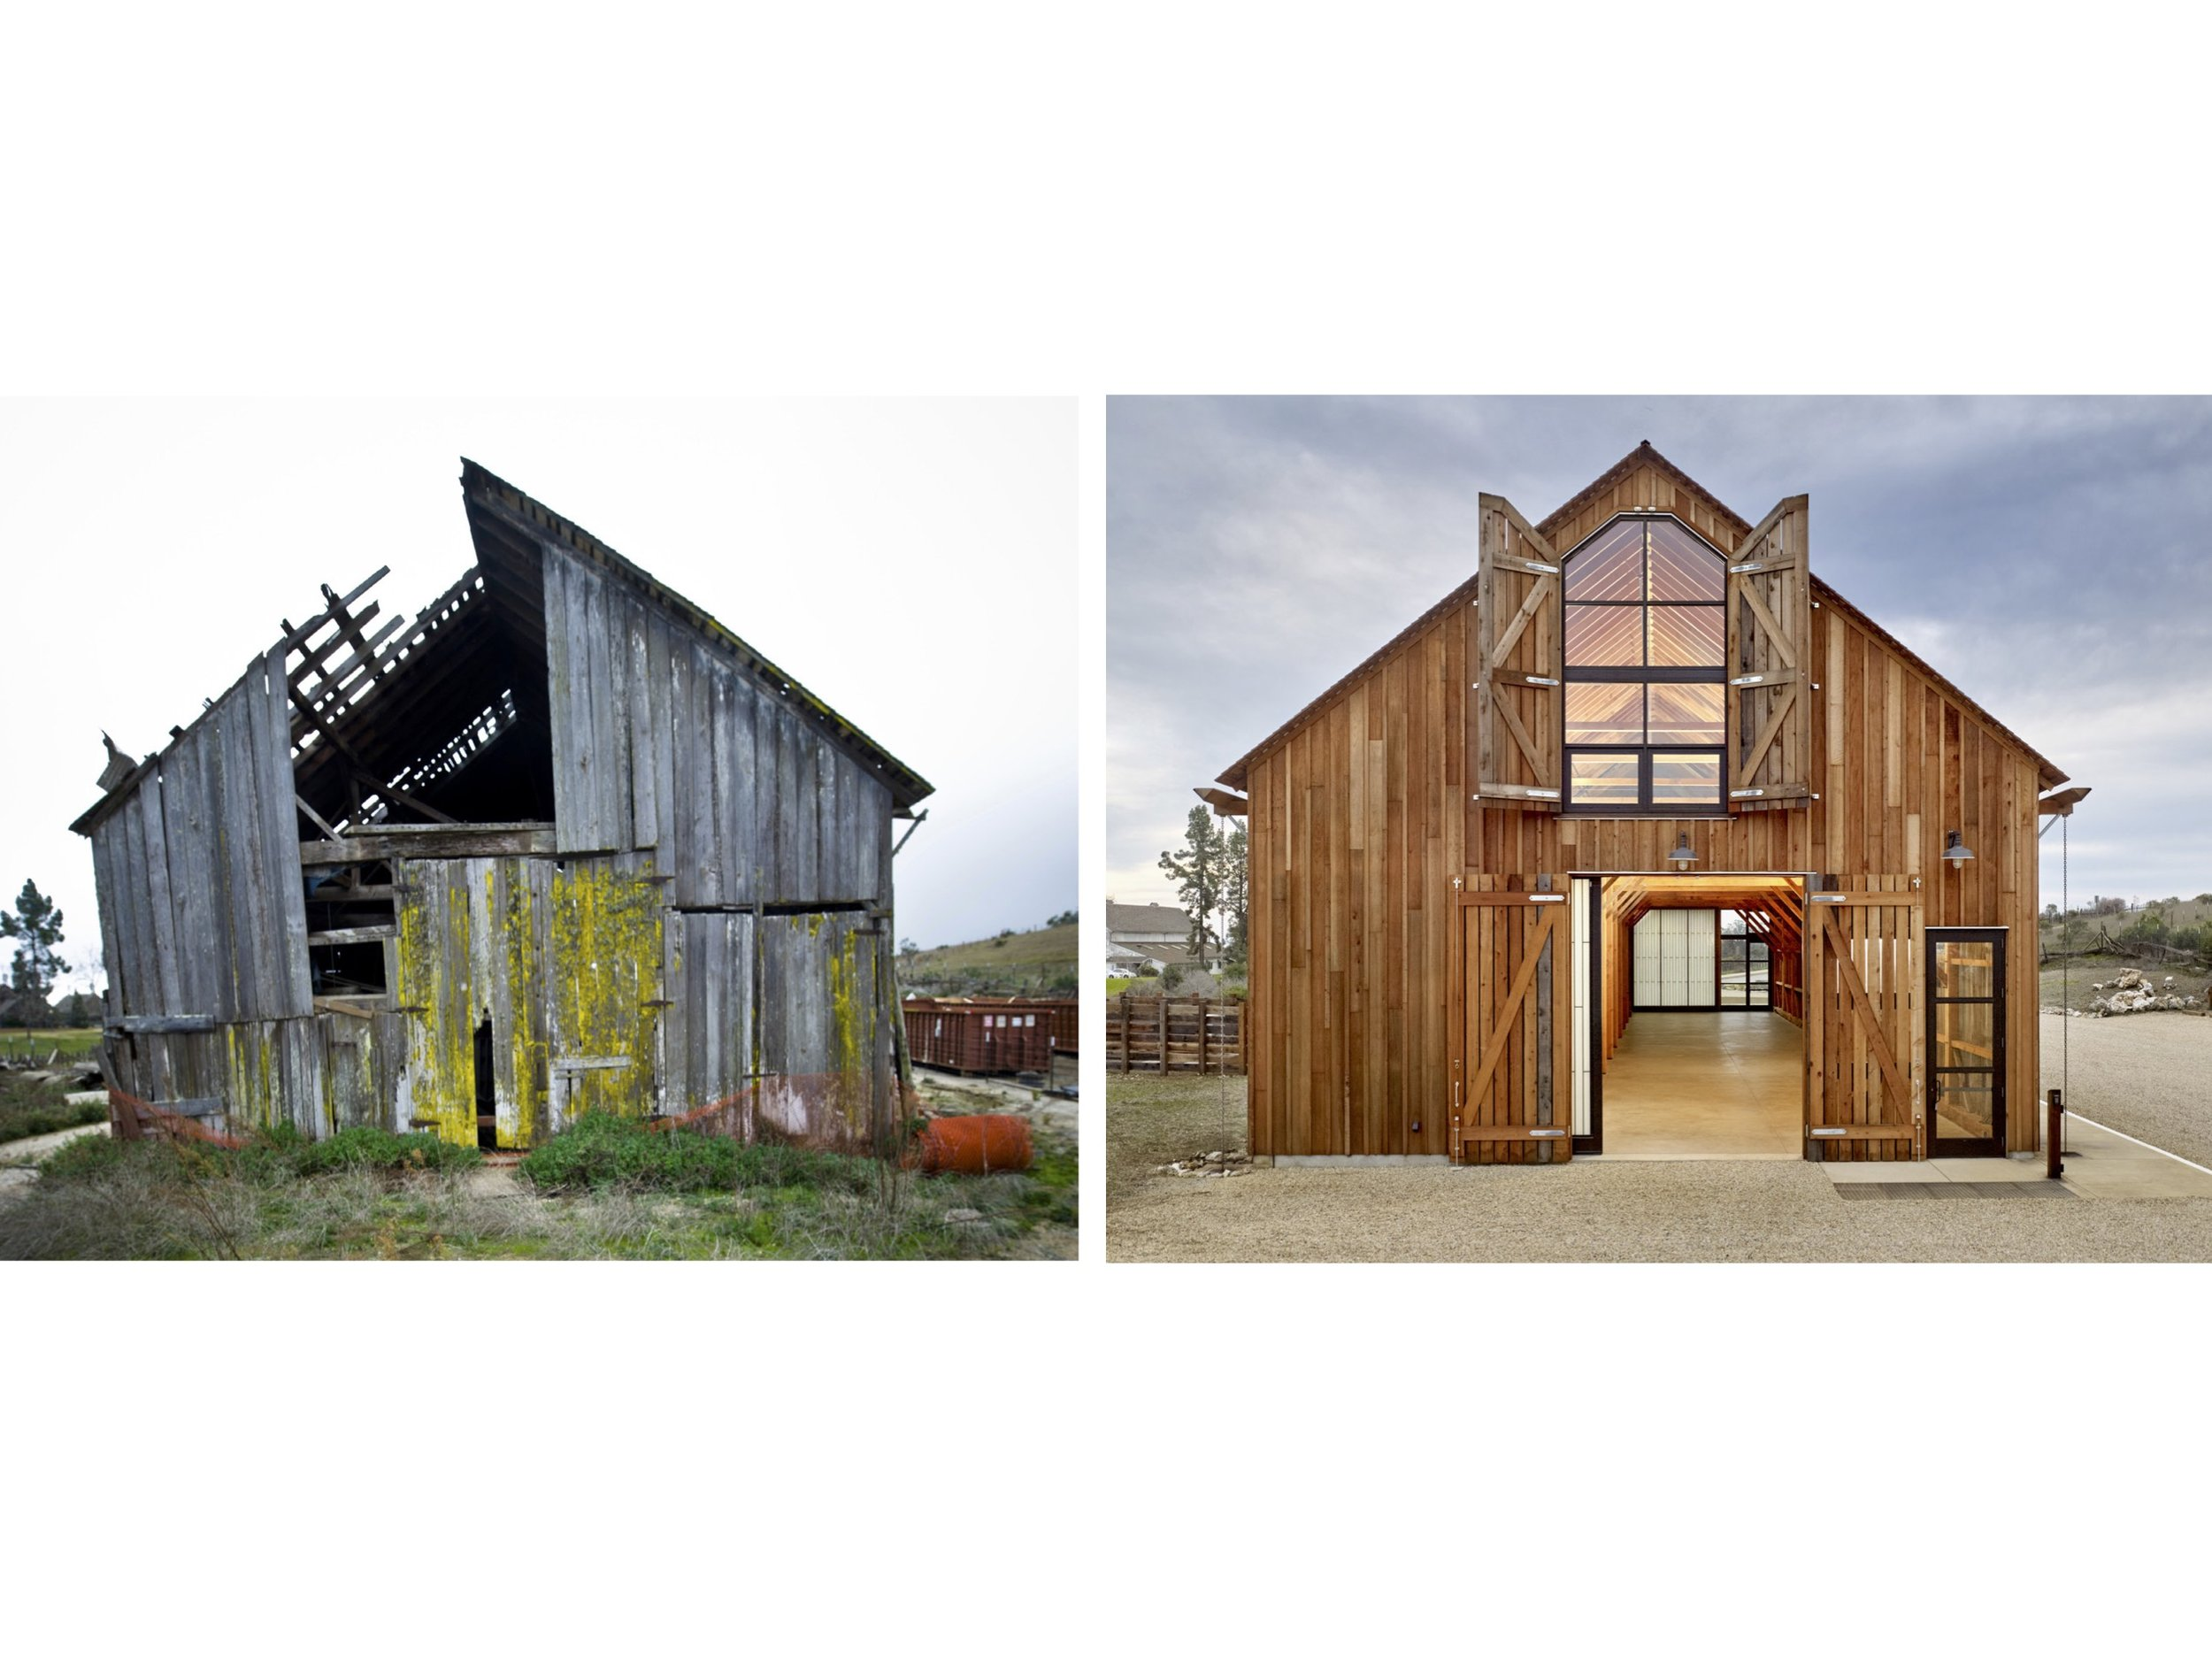 03 UCSC HB_before and after combination.jpg